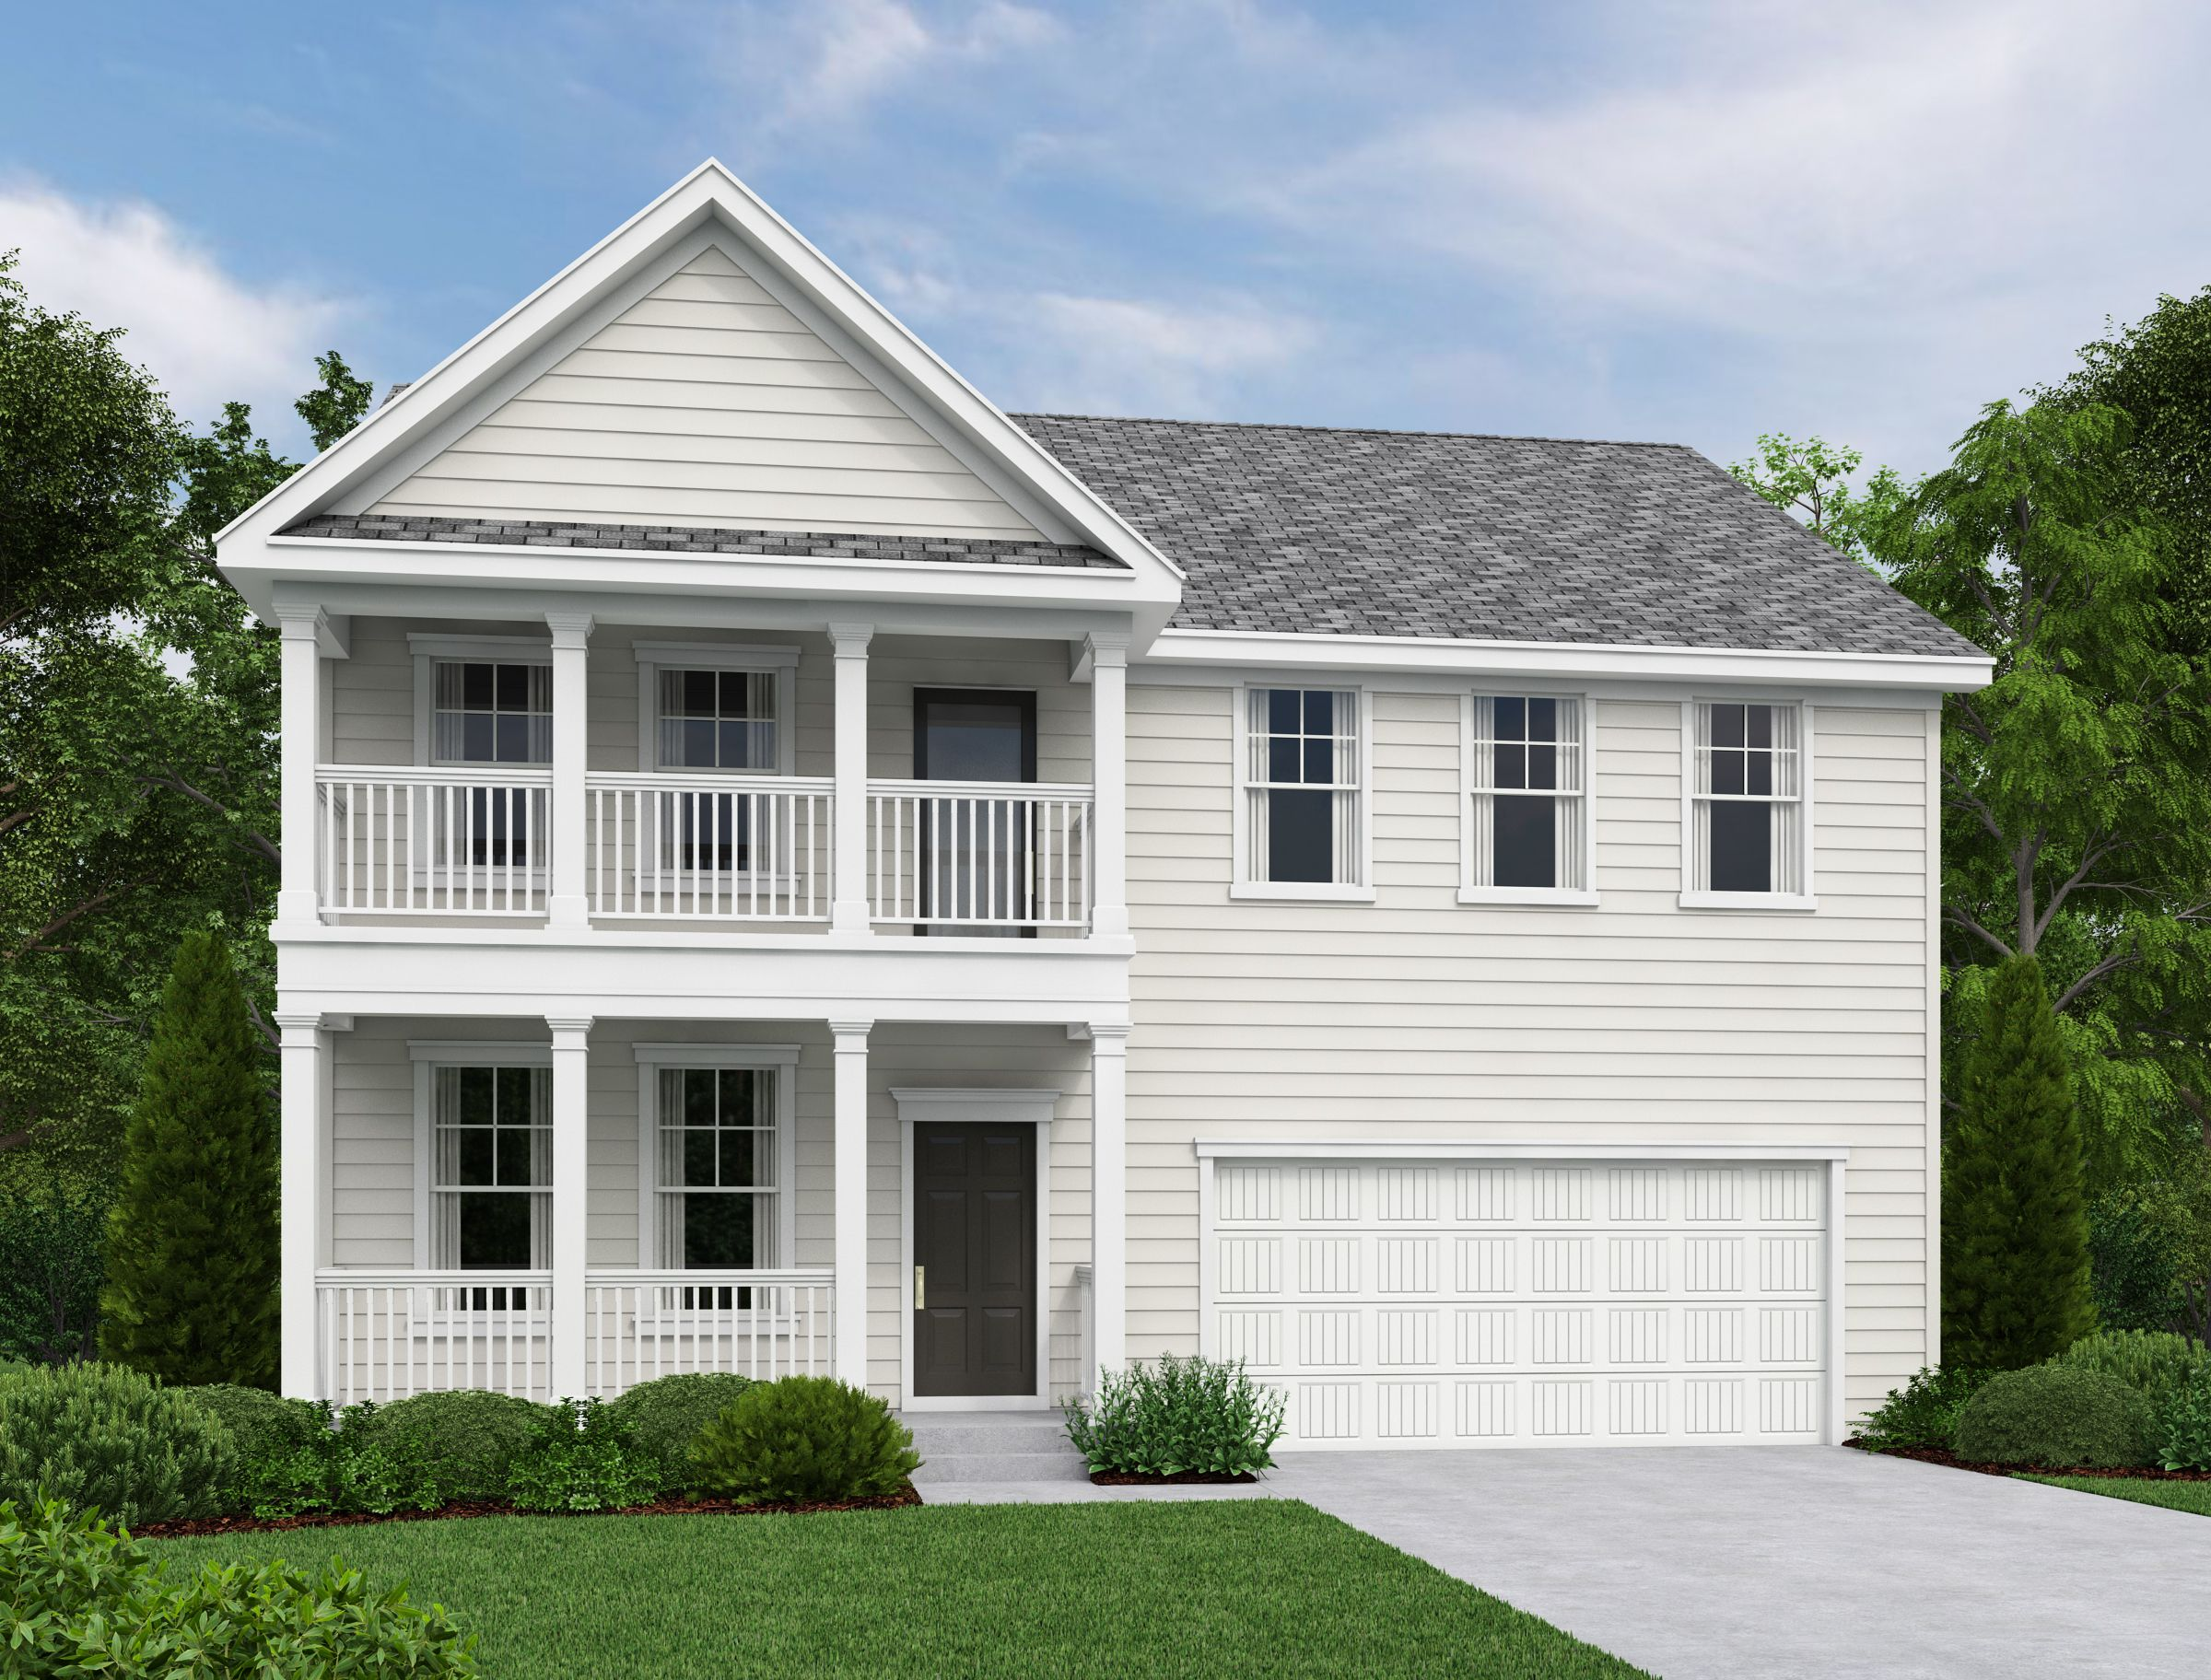 Ashton Woods Homes, The Pointe at Rhodes Crossing, Roosevelt ...